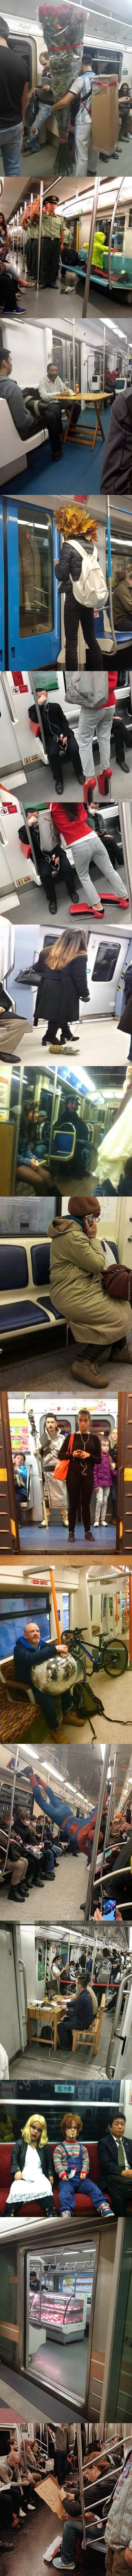 The Subway Chronicles 4